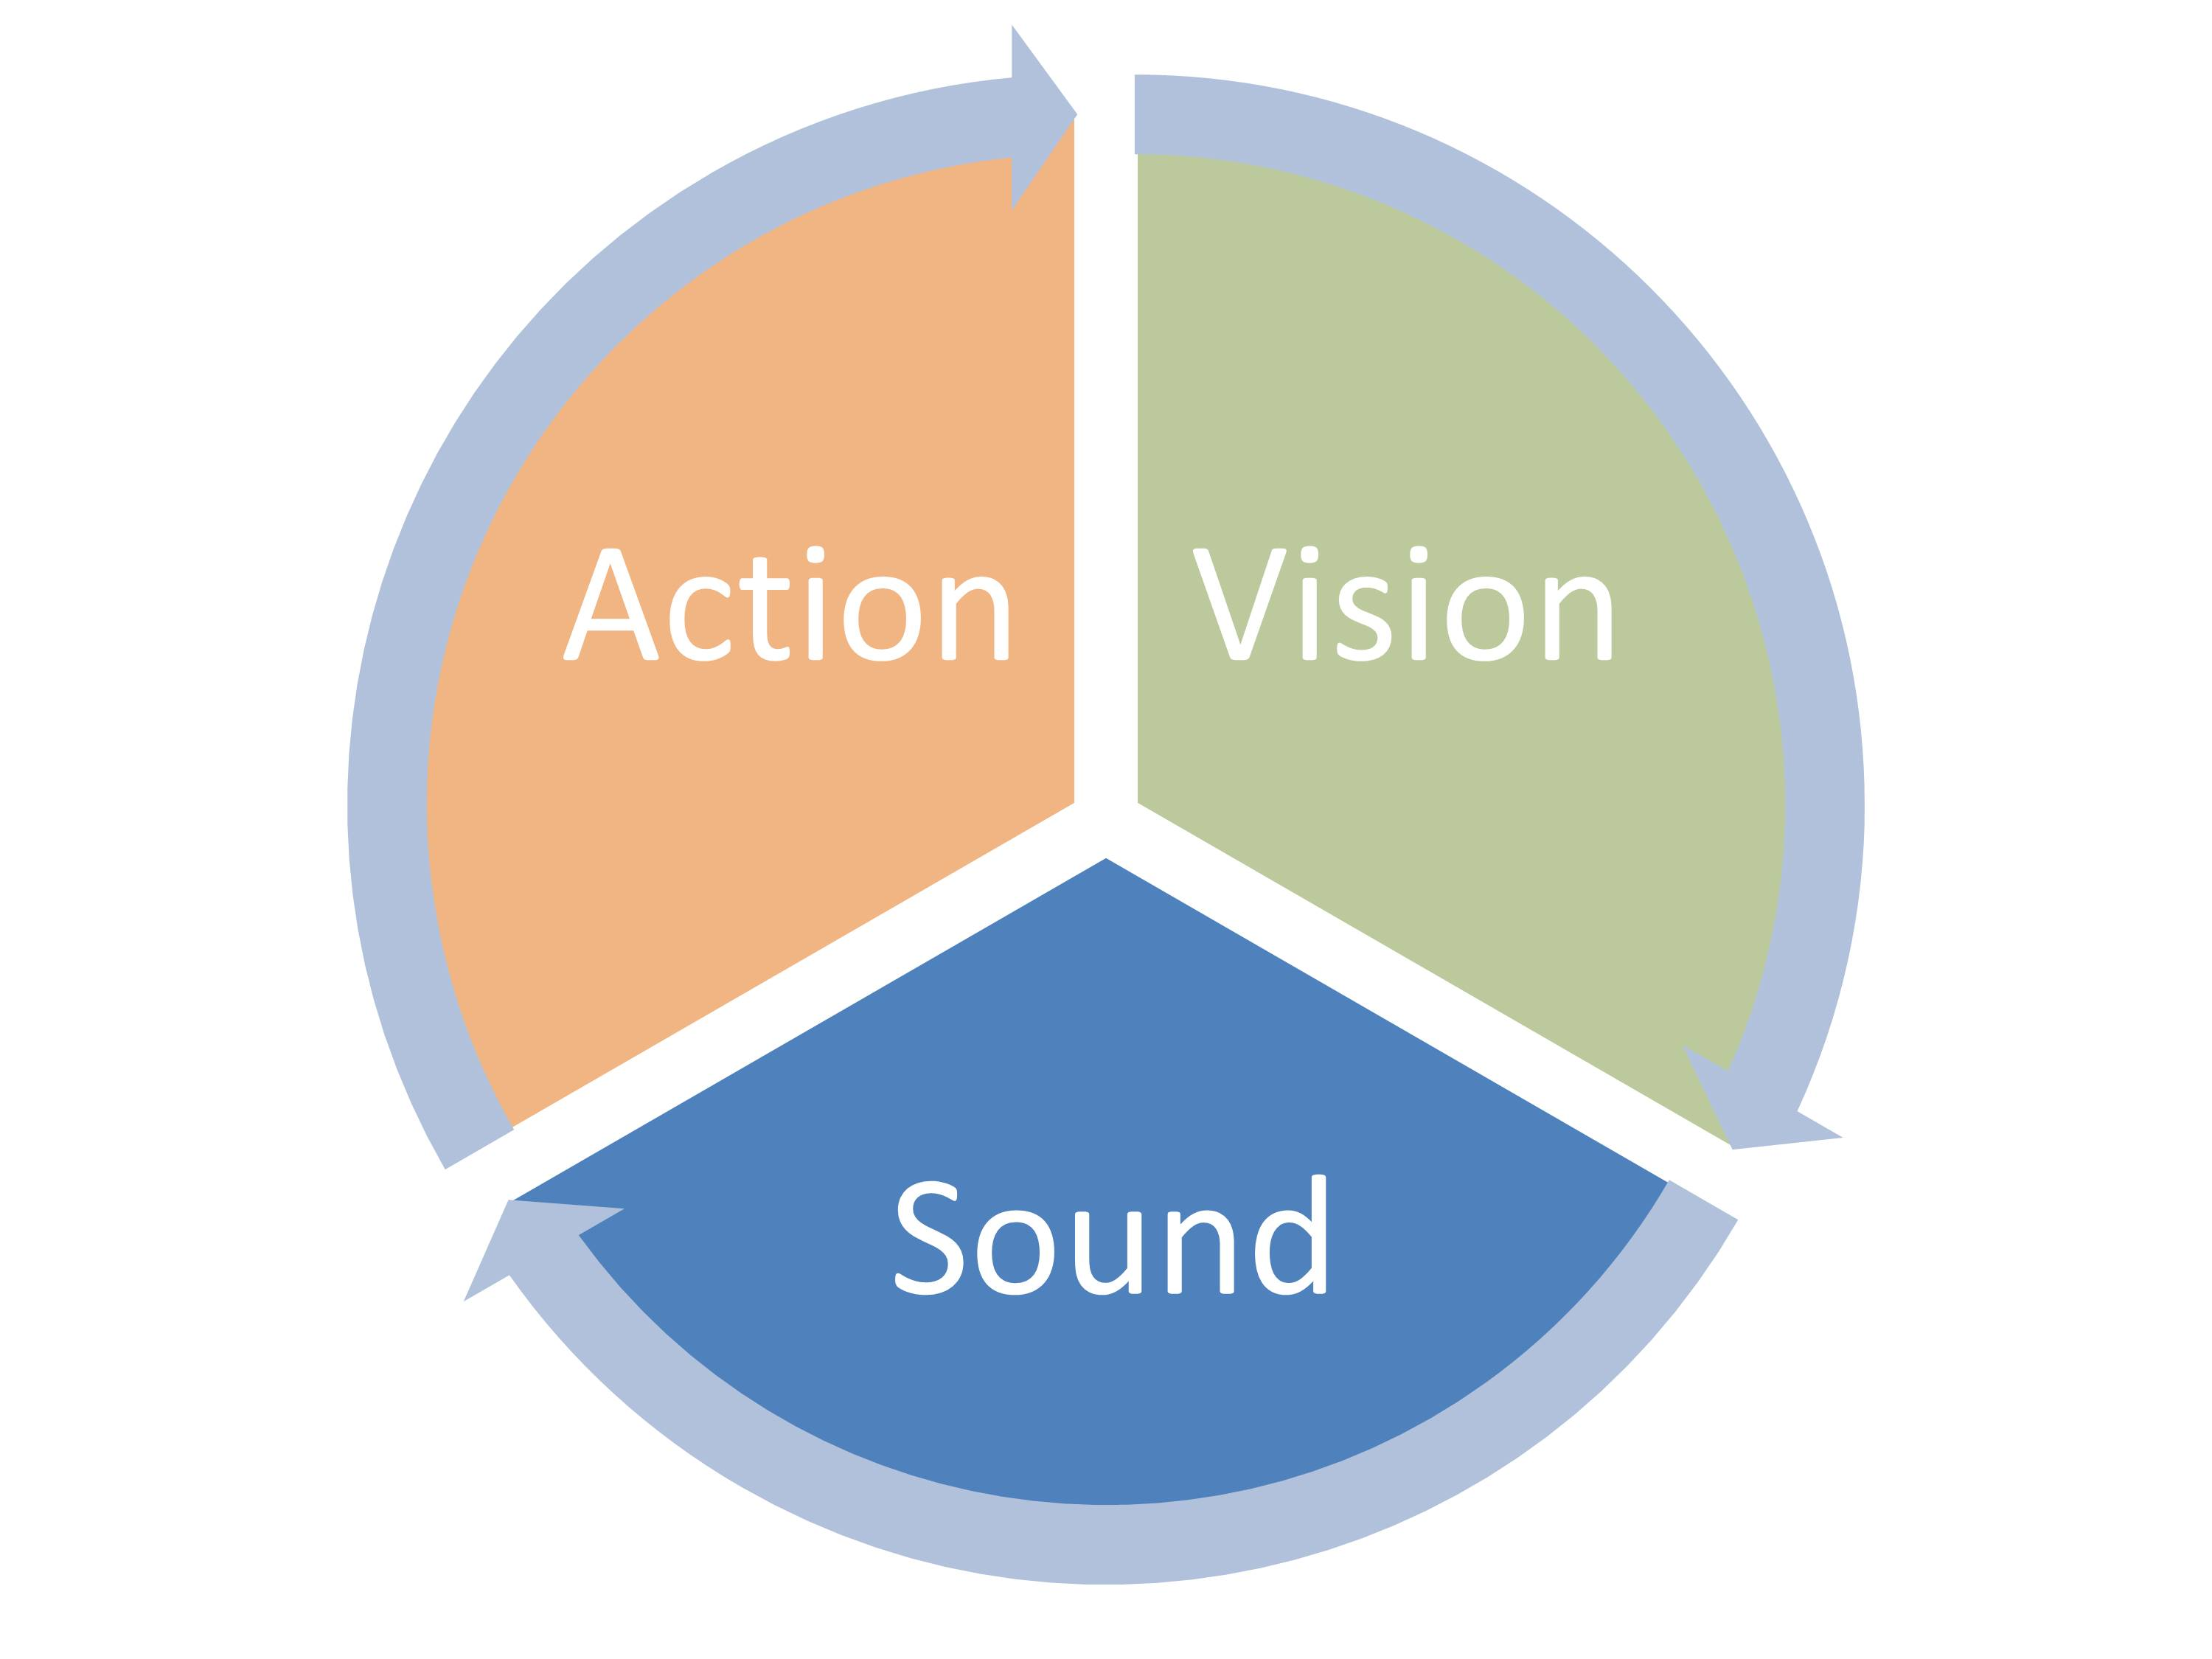 A diagram showing the three main senses for learning: action, vision, and sound